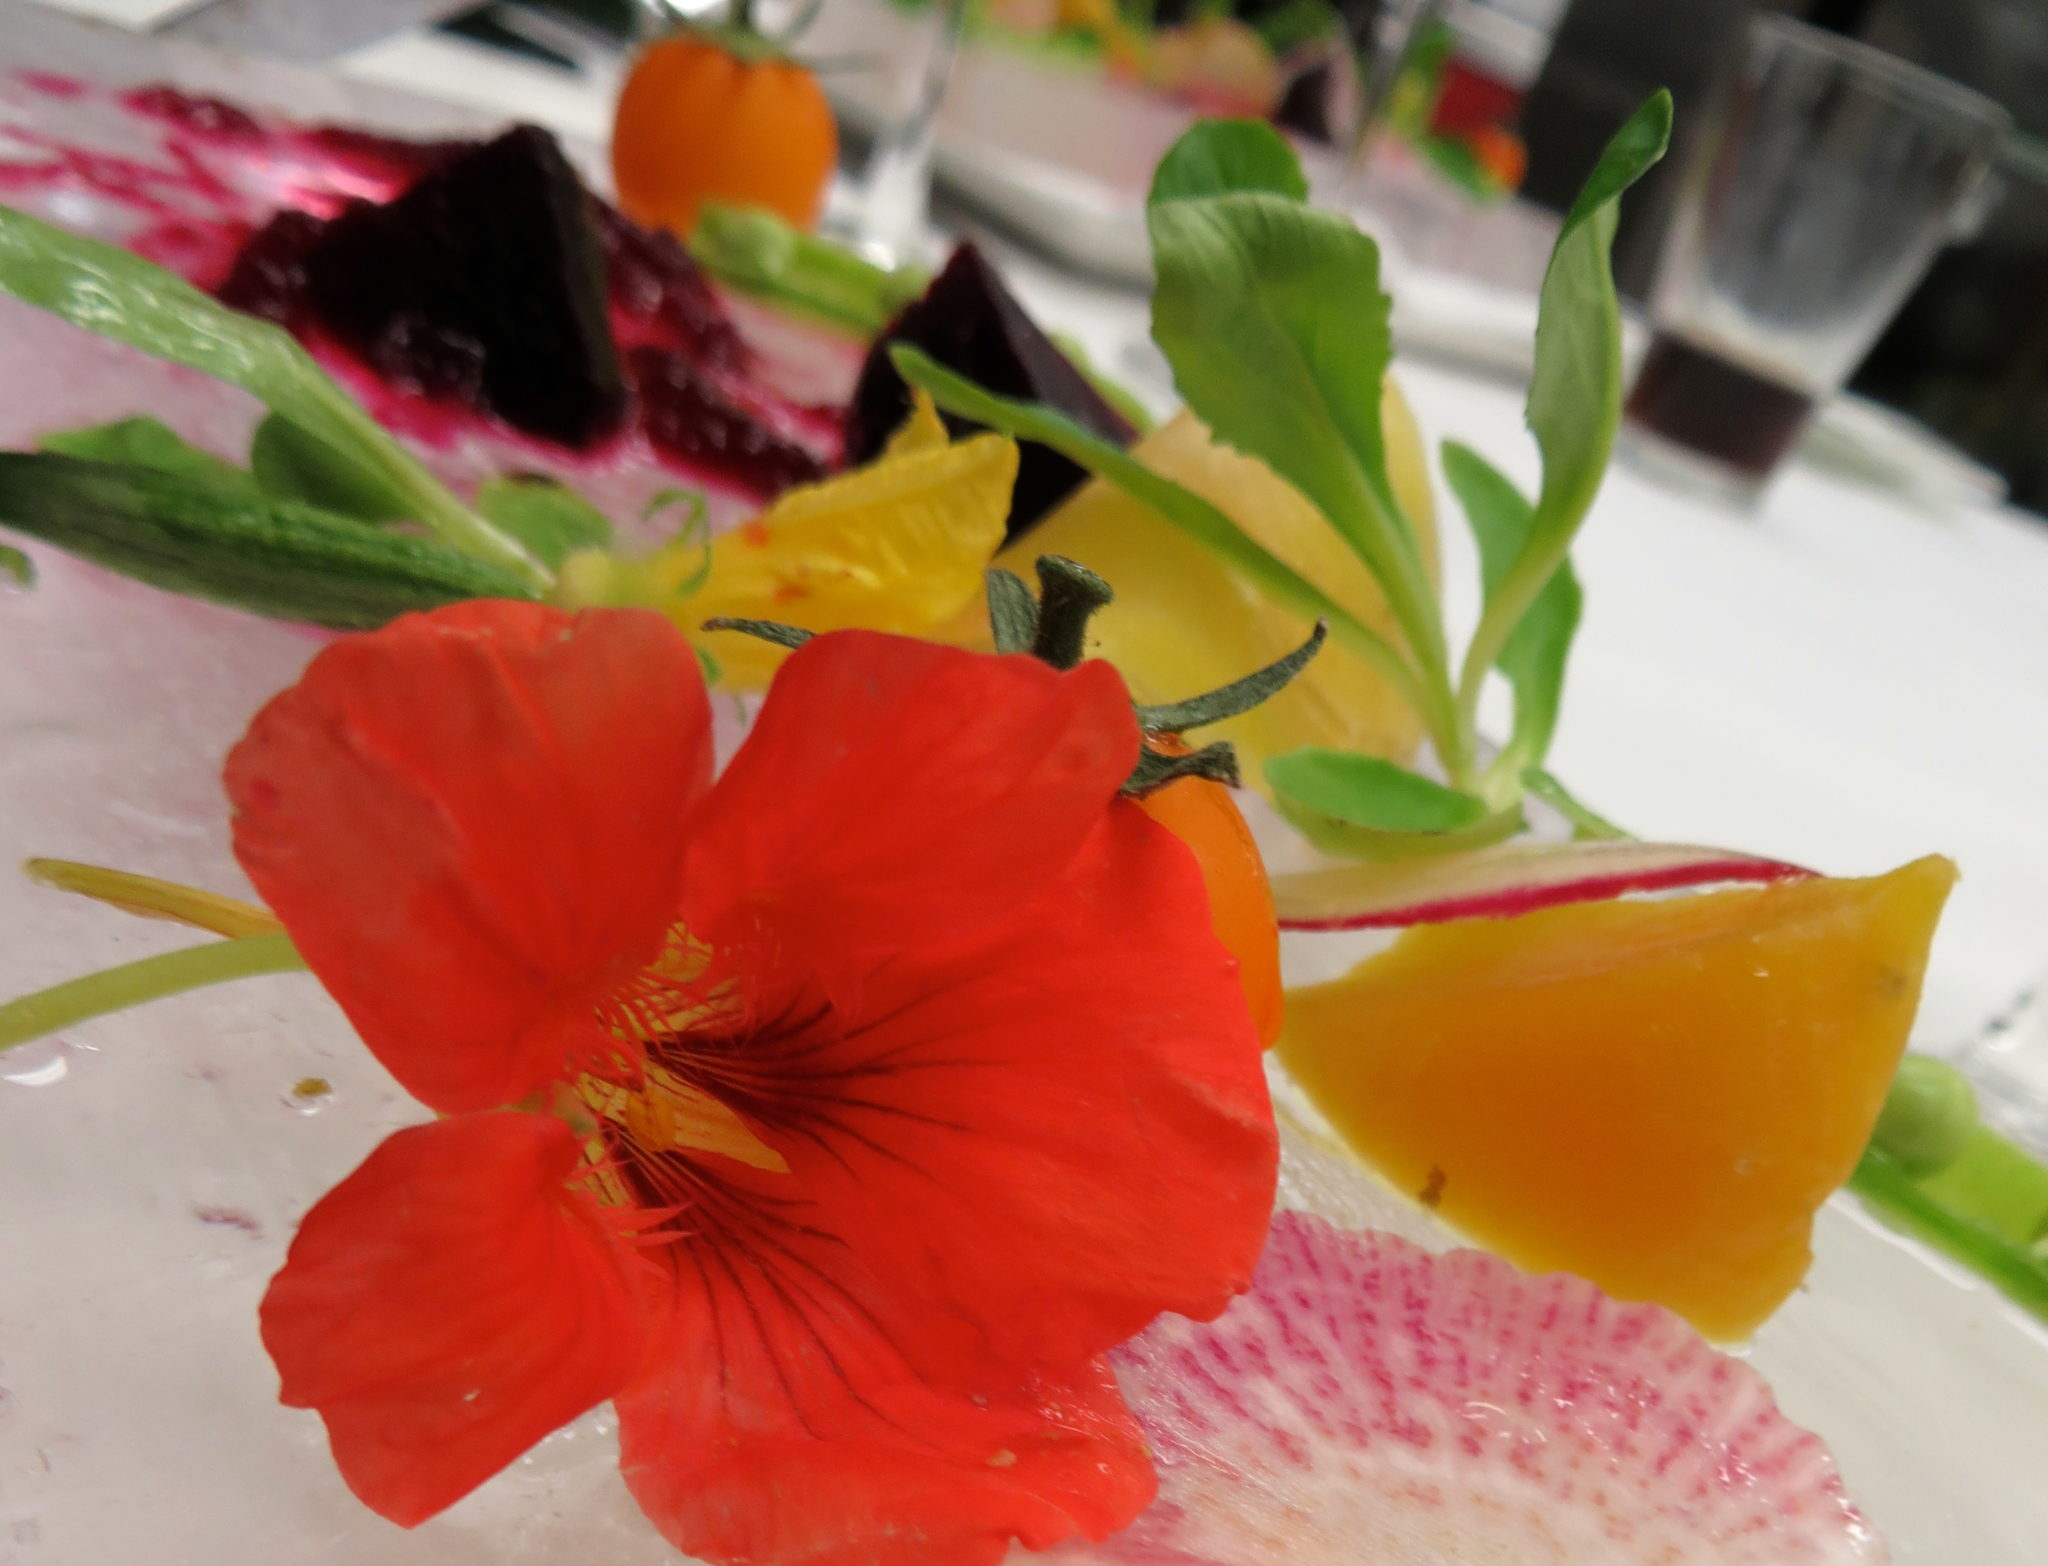 Ice salad of beets, shoots and edible flowers.